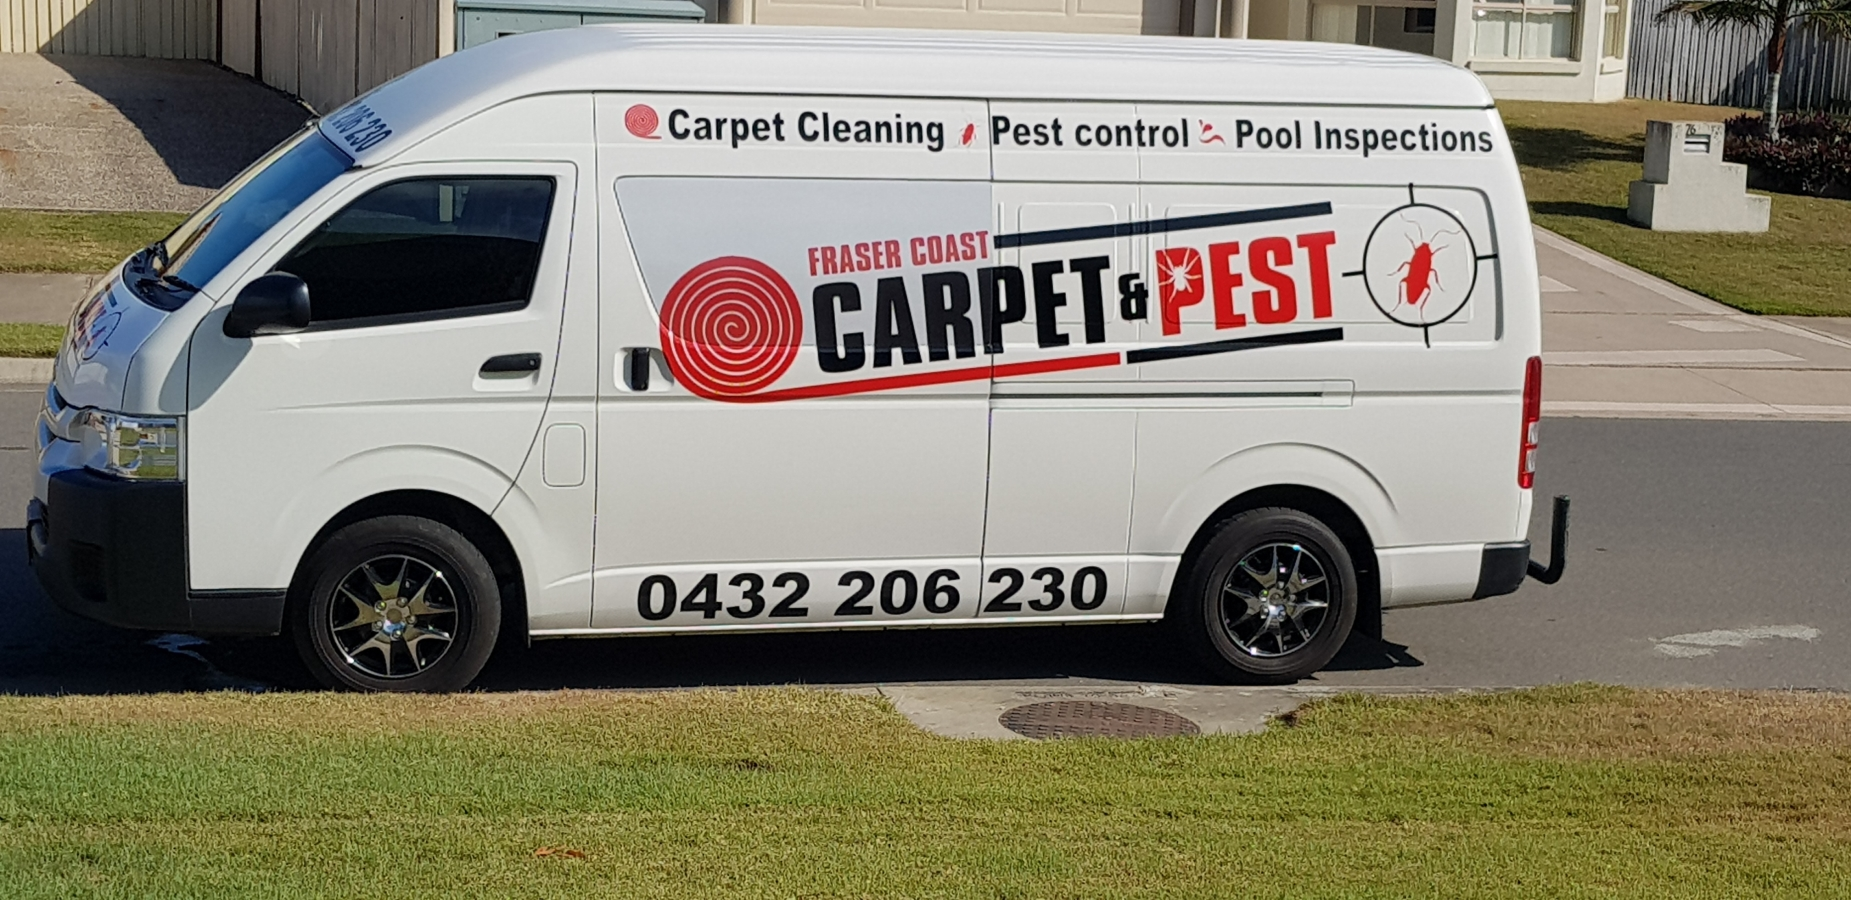 Fraser-Coast-Carpet-and-Pest-Van-1